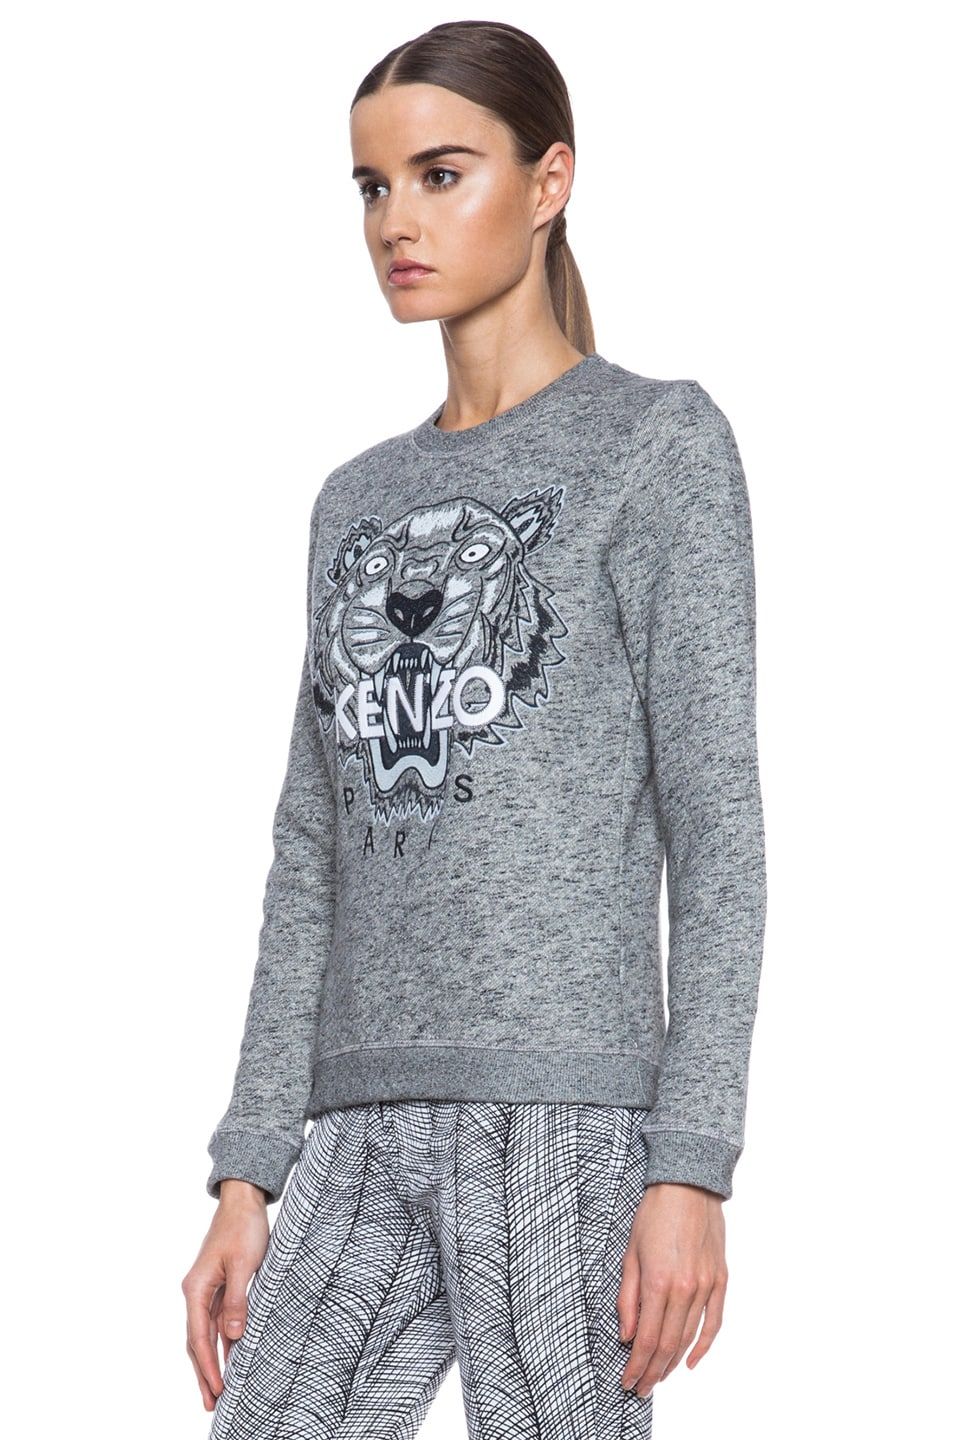 Image 2 of KENZO Embroidered Tiger Sweatshirt in Grey Marl